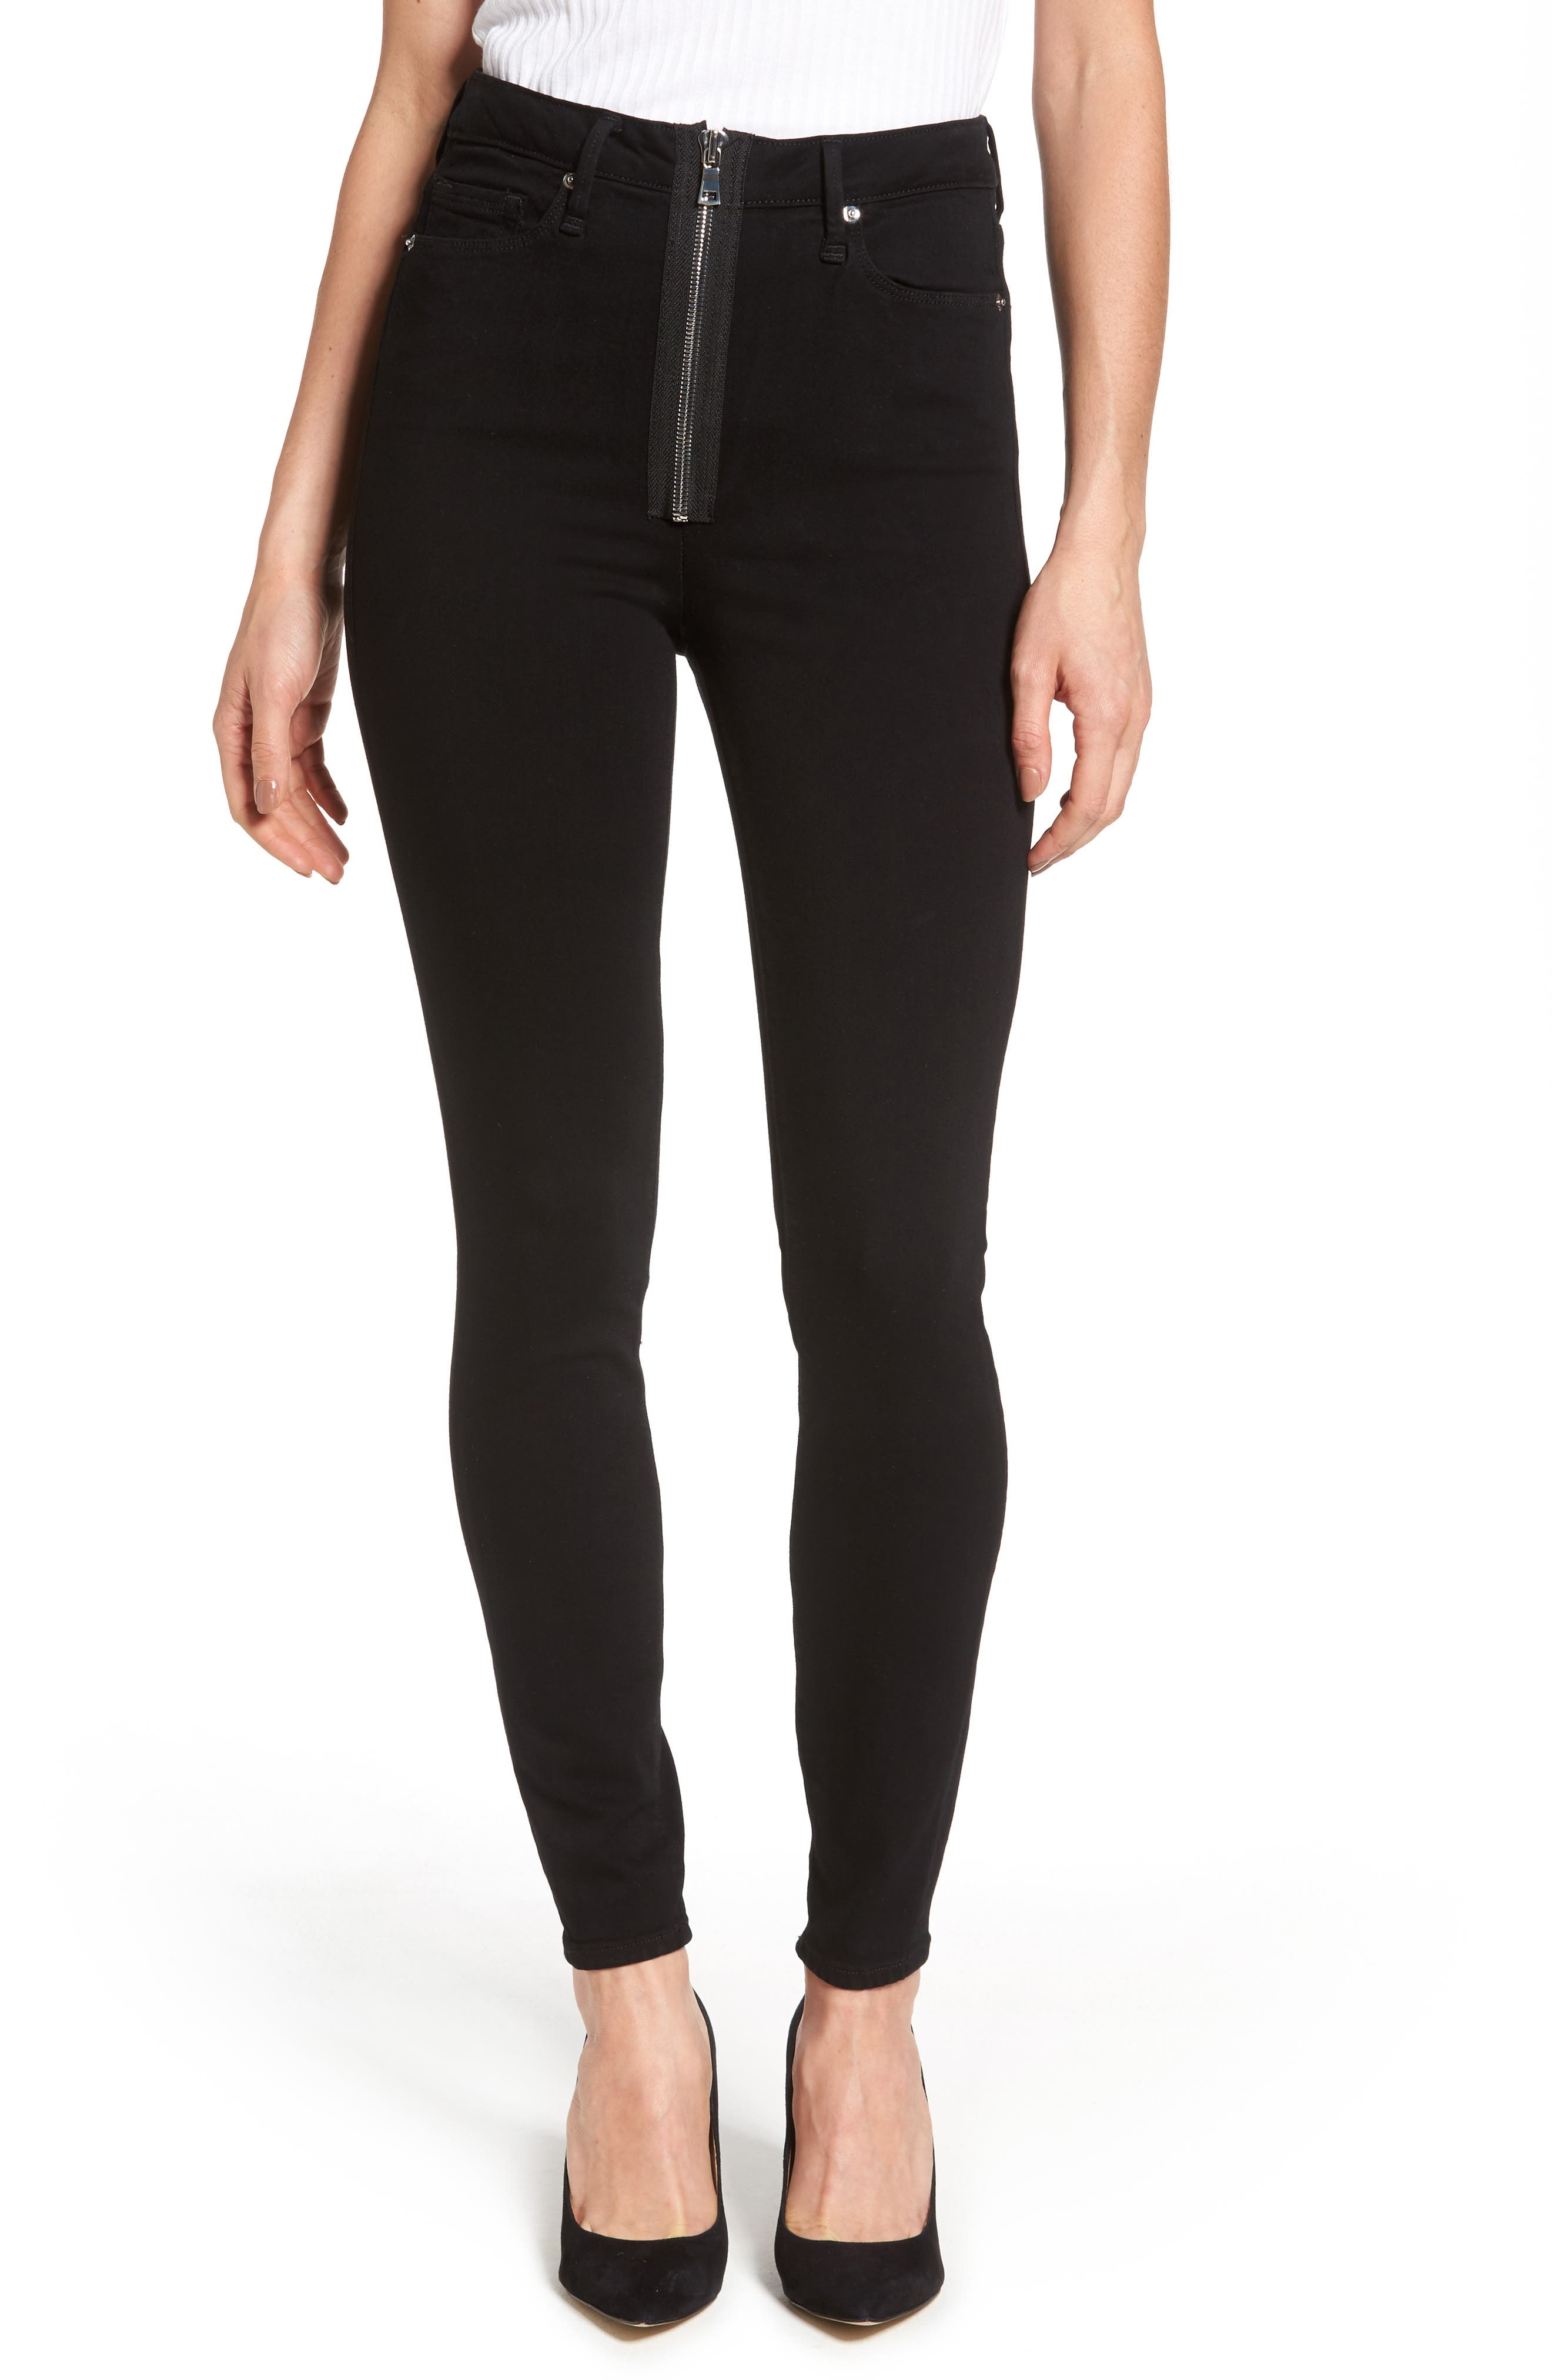 Main Image - Good American Good Waist Exposed Zip Skinny Jeans (Black 001) (Extended Sizes)